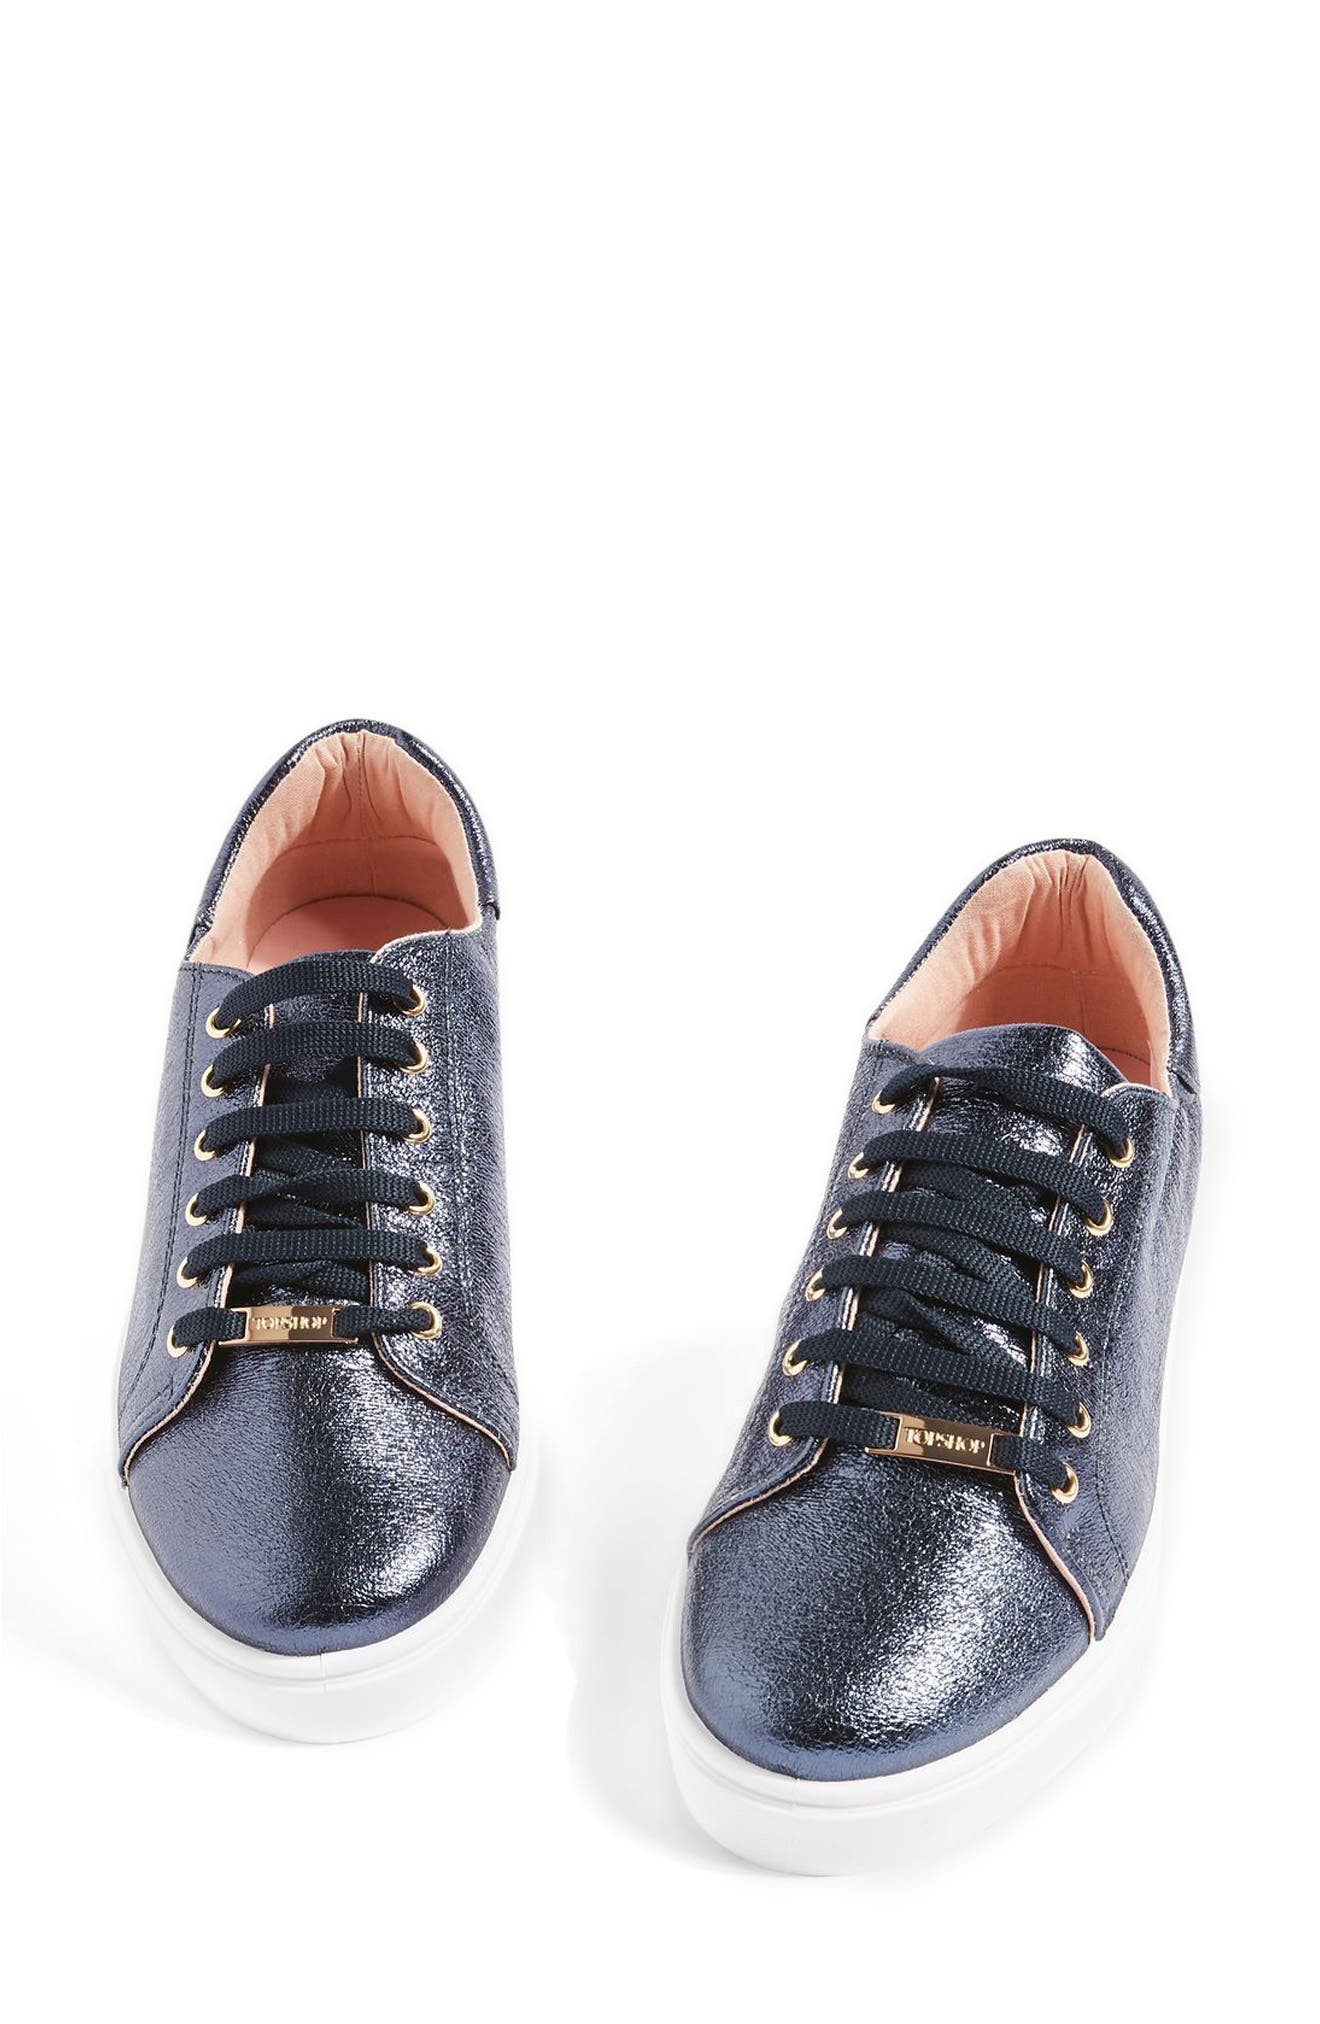 Main Image - Topshop Cosmo Metallic Lace-Up Sneaker (Women)